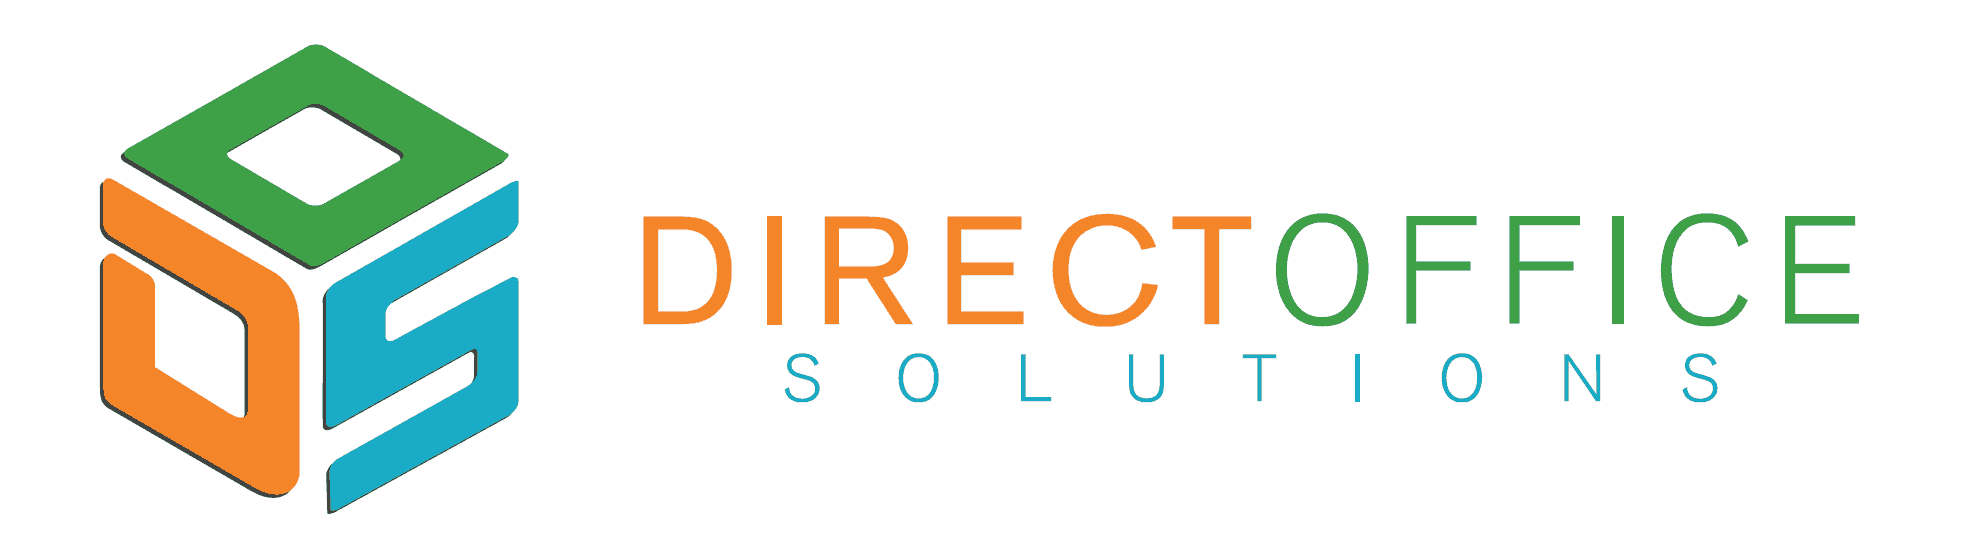 Direct Office Solutions